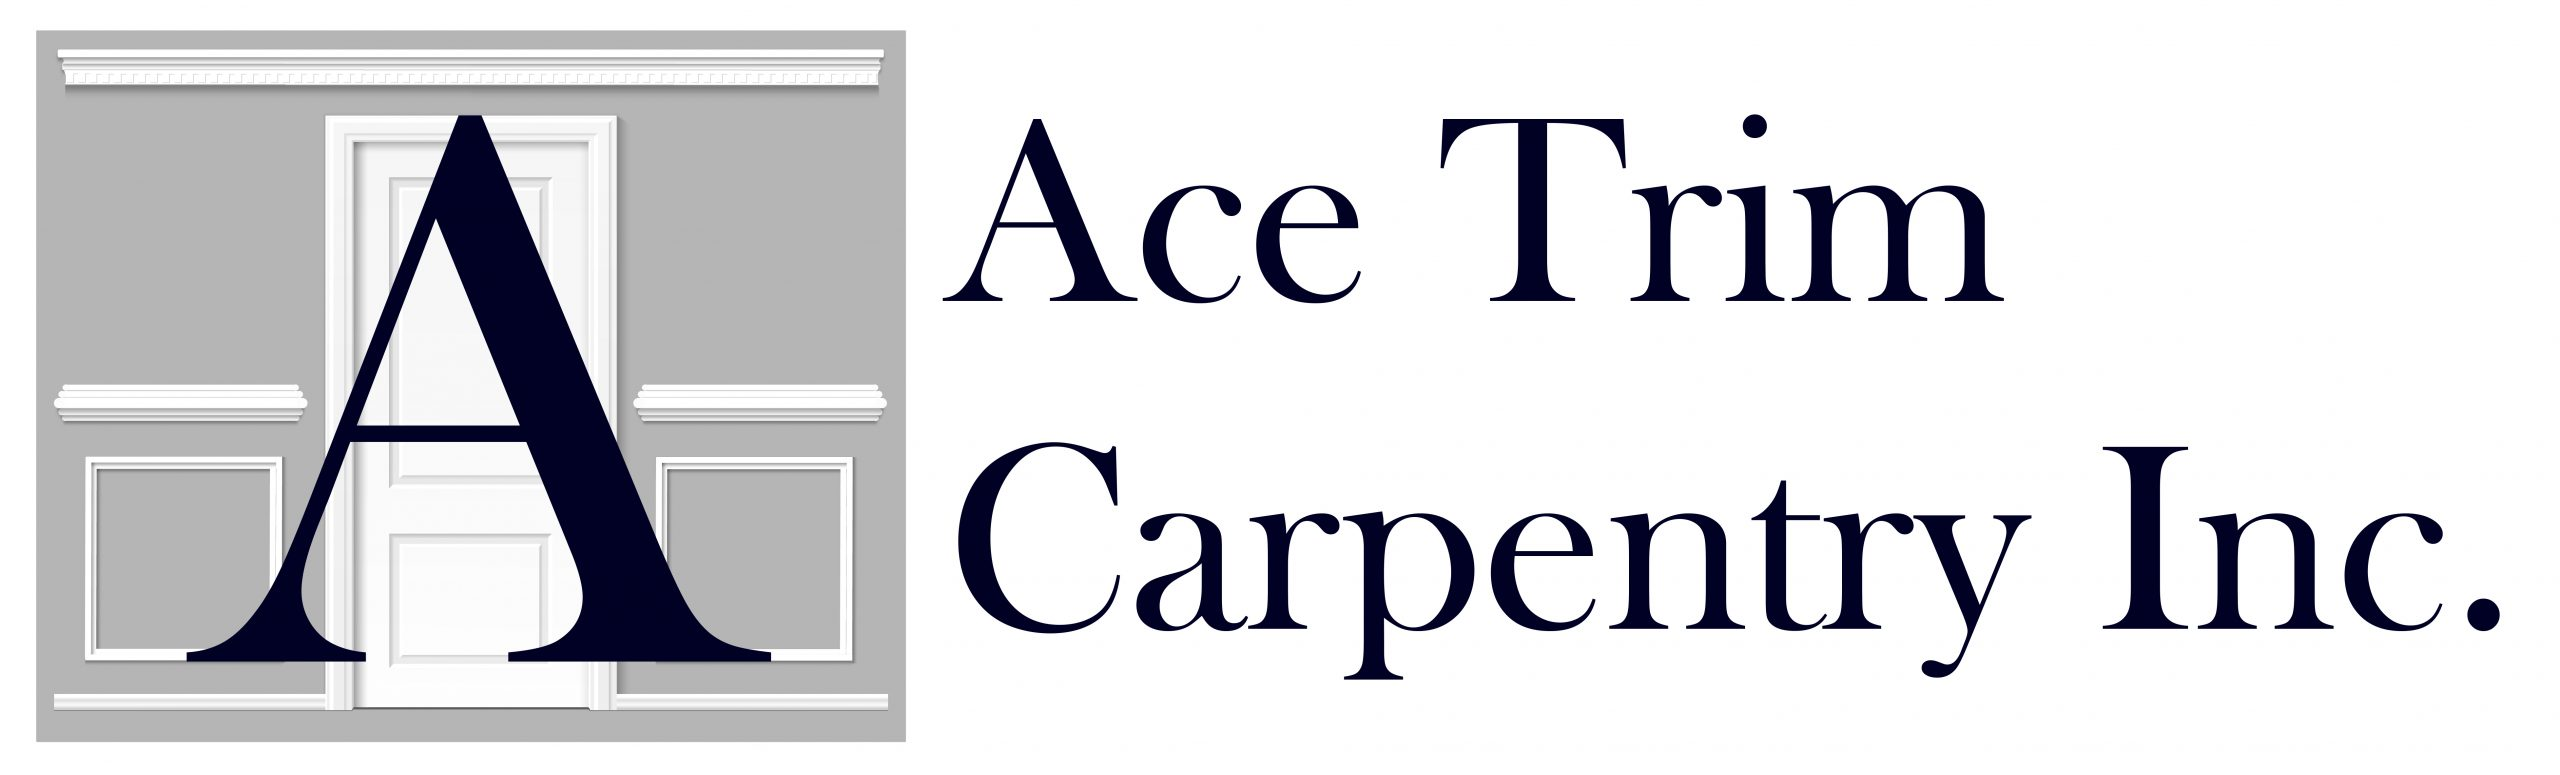 Ace Trim Carpentry Inc.